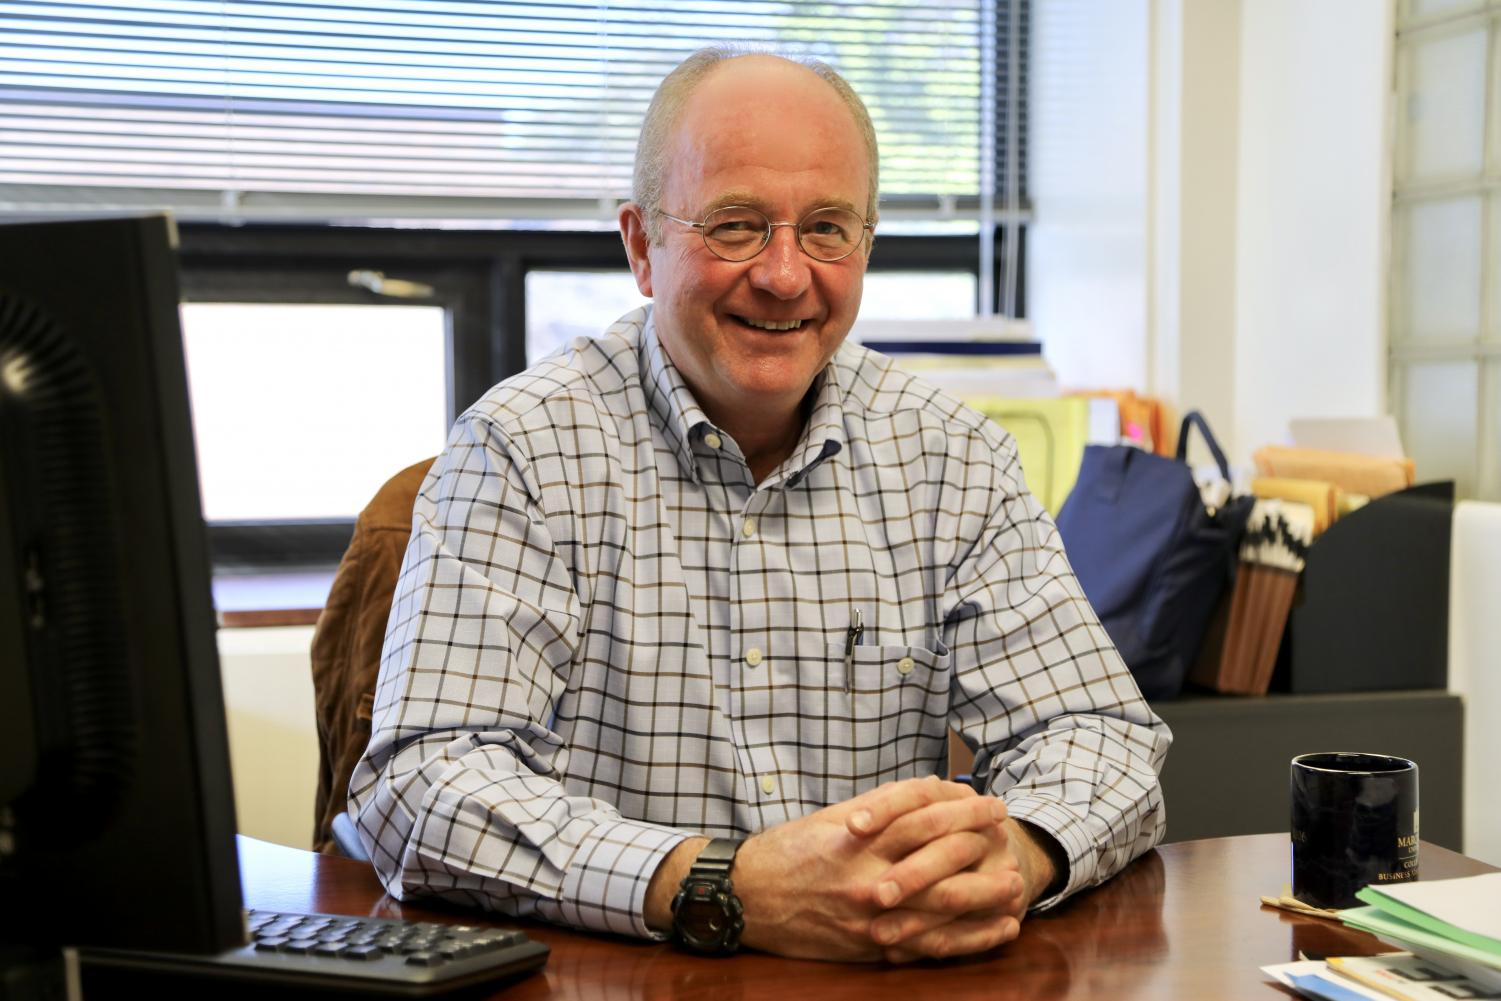 Professor Doug Fisher said the new online supply chain masters program aims to provide students with problem-solving skills.